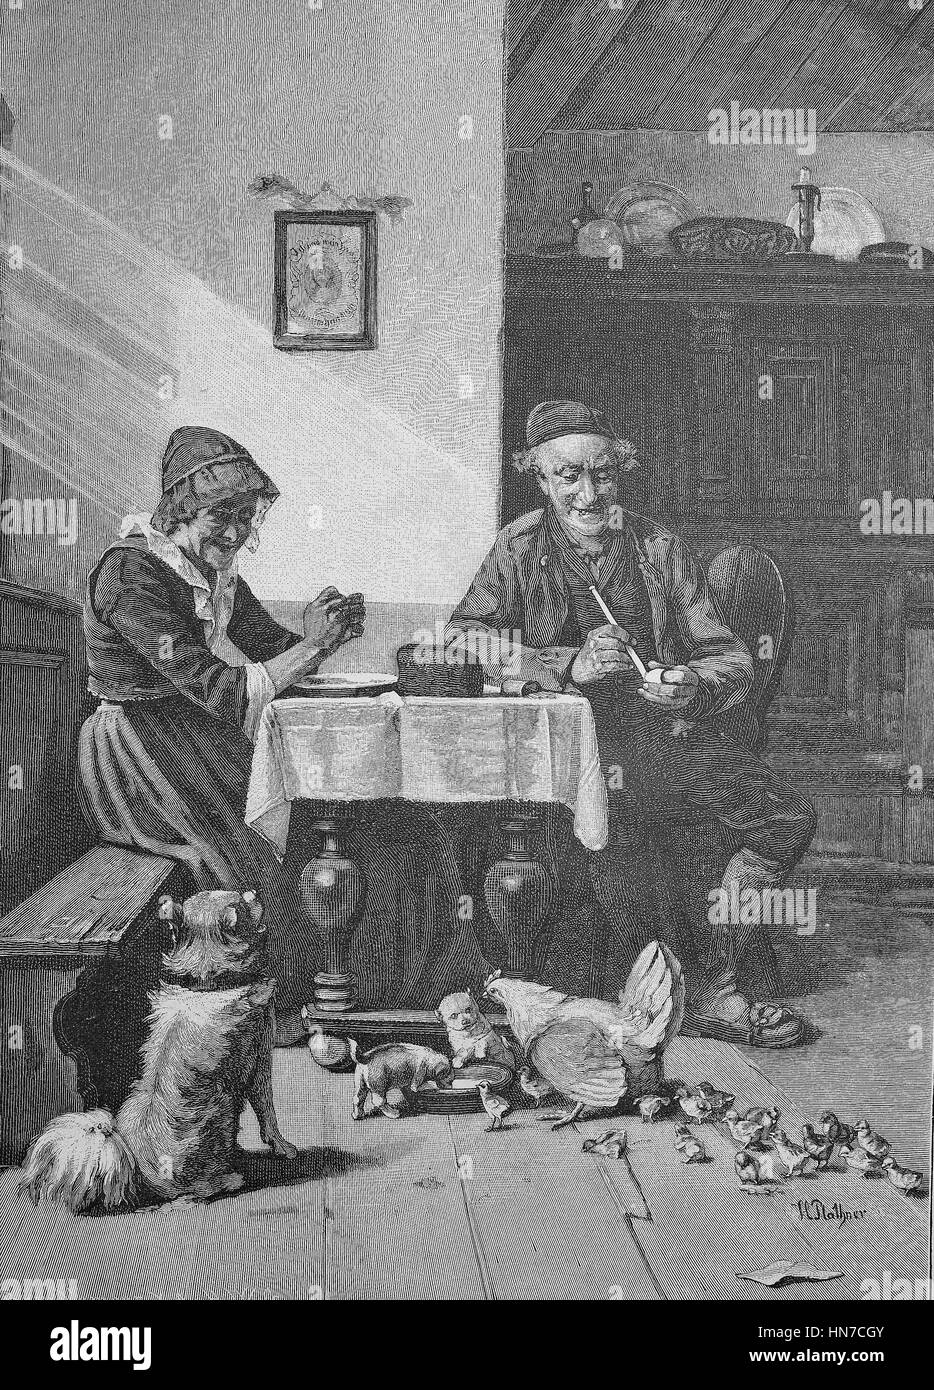 Feeding, in the living-room of a farm, with dog, dog-puppies, chickens and chicks at feeding, Fuetterung, in der - Stock Image